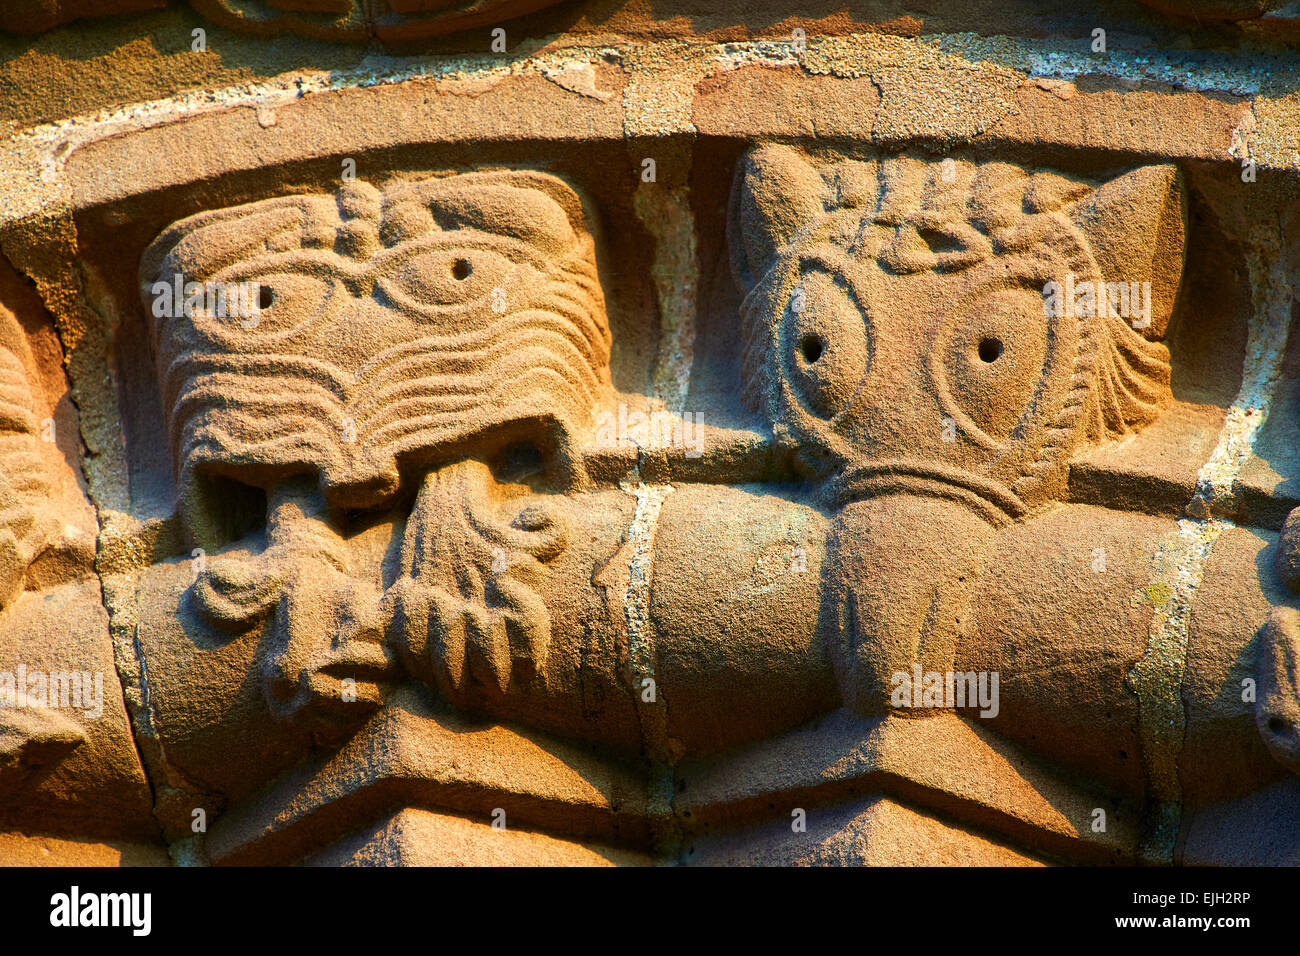 Norman Romanesque relief sculptures of mythical creatures. St Mary & St David Church, Kilpeck Hereford, England - Stock Image